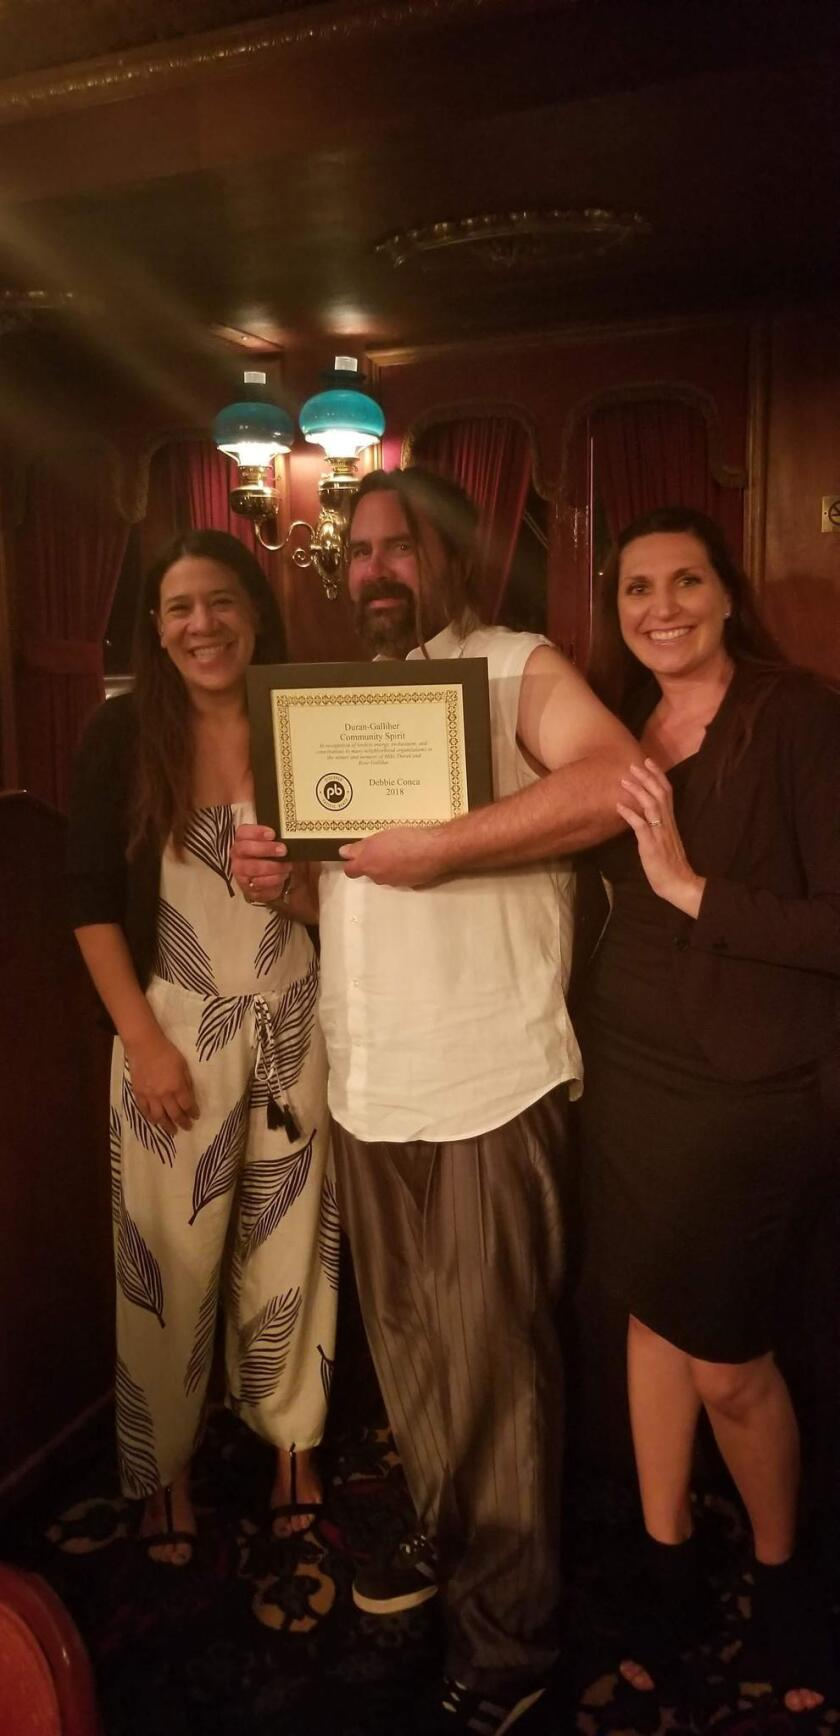 The Duran-Galliher Community Spirit Award (in recognition of tireless energy, enthusiasm and contributions to many neighborhood organizations in memory of Mike Duran and Rose Galliher) went to Debbie Conca of Mr Frostie, accepted by her son Jack Conca.